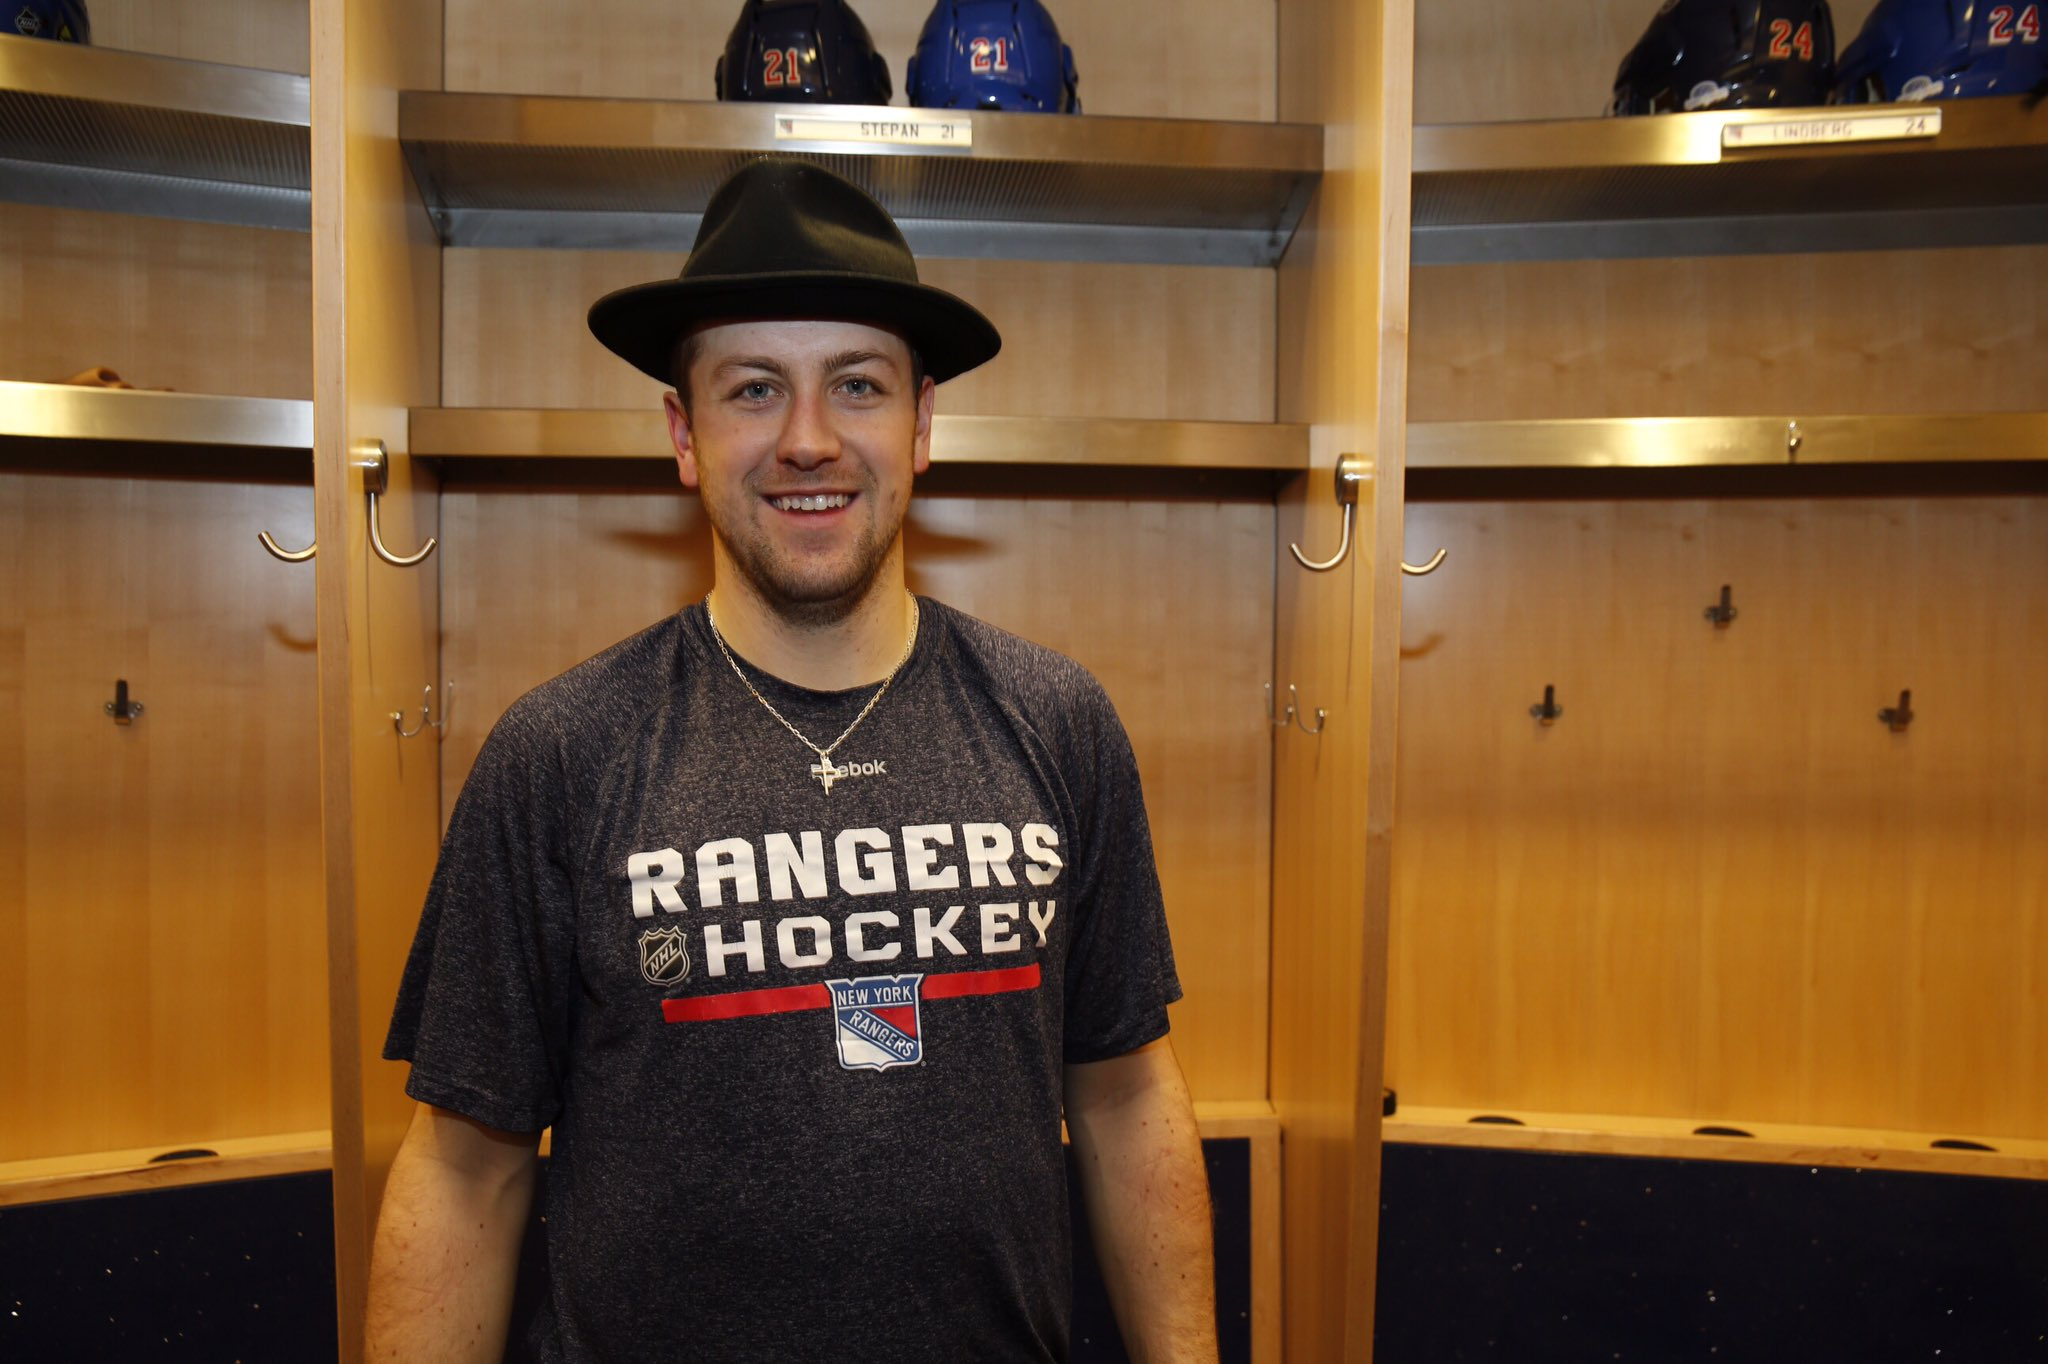 Derek Stepan dons the Broadway Hat following his clutch tying goal with 1:13 left in an exciting Rangers' 3-2 shootout win over the Devils. AP Photo via Getty Images courtesy NYRangers.